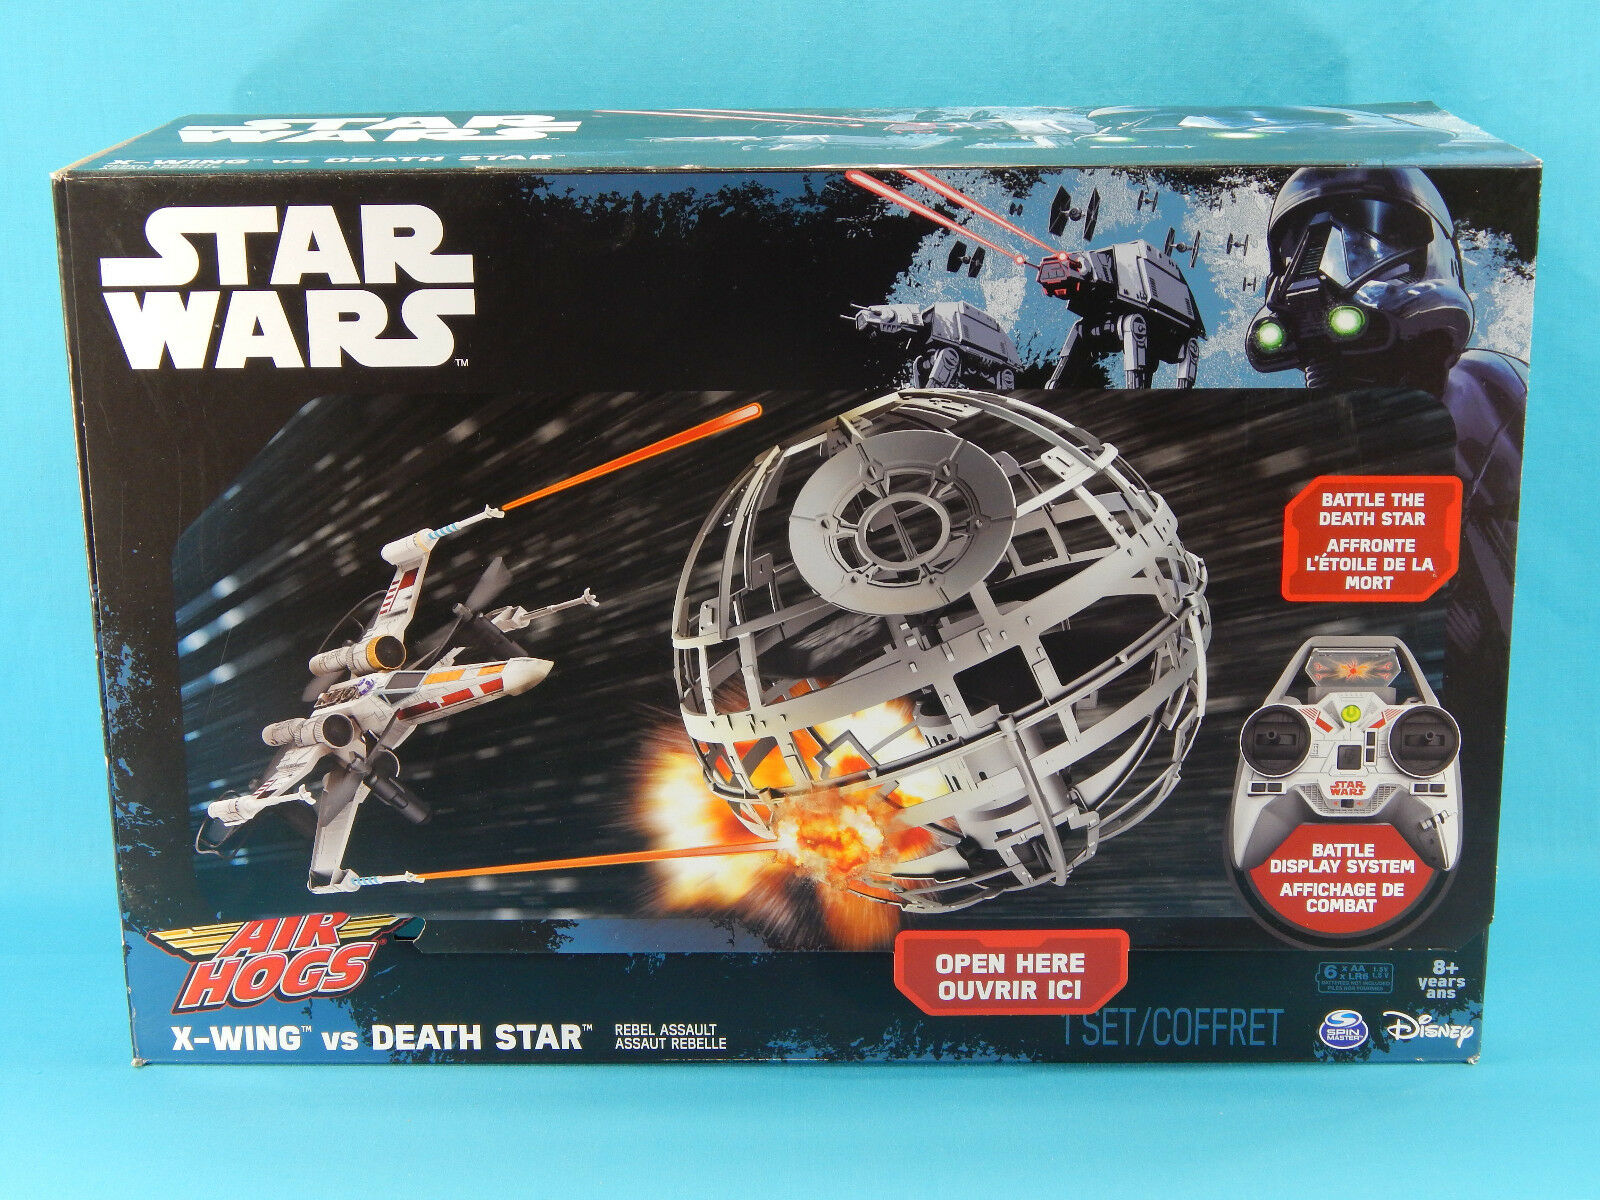 Air Hogs Star Wars X-Wing vs Death Star Remote Control Rebel Assault RC Drones